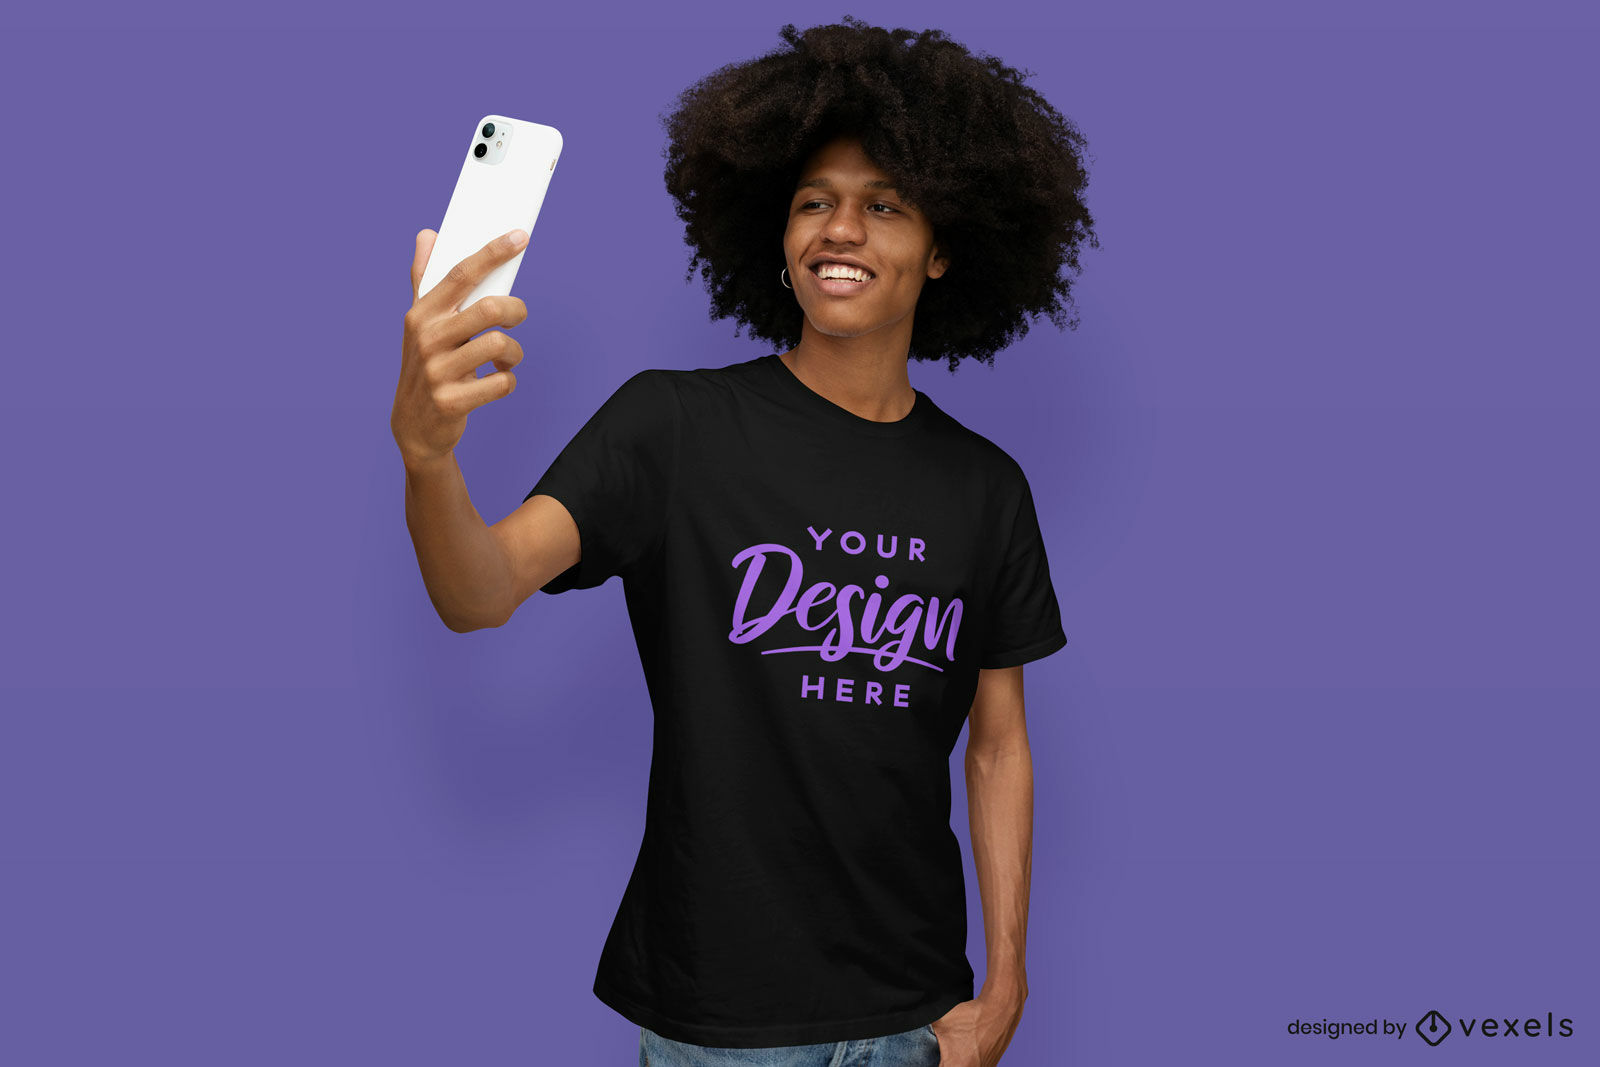 Black and purple t-shirt mockup in purple background